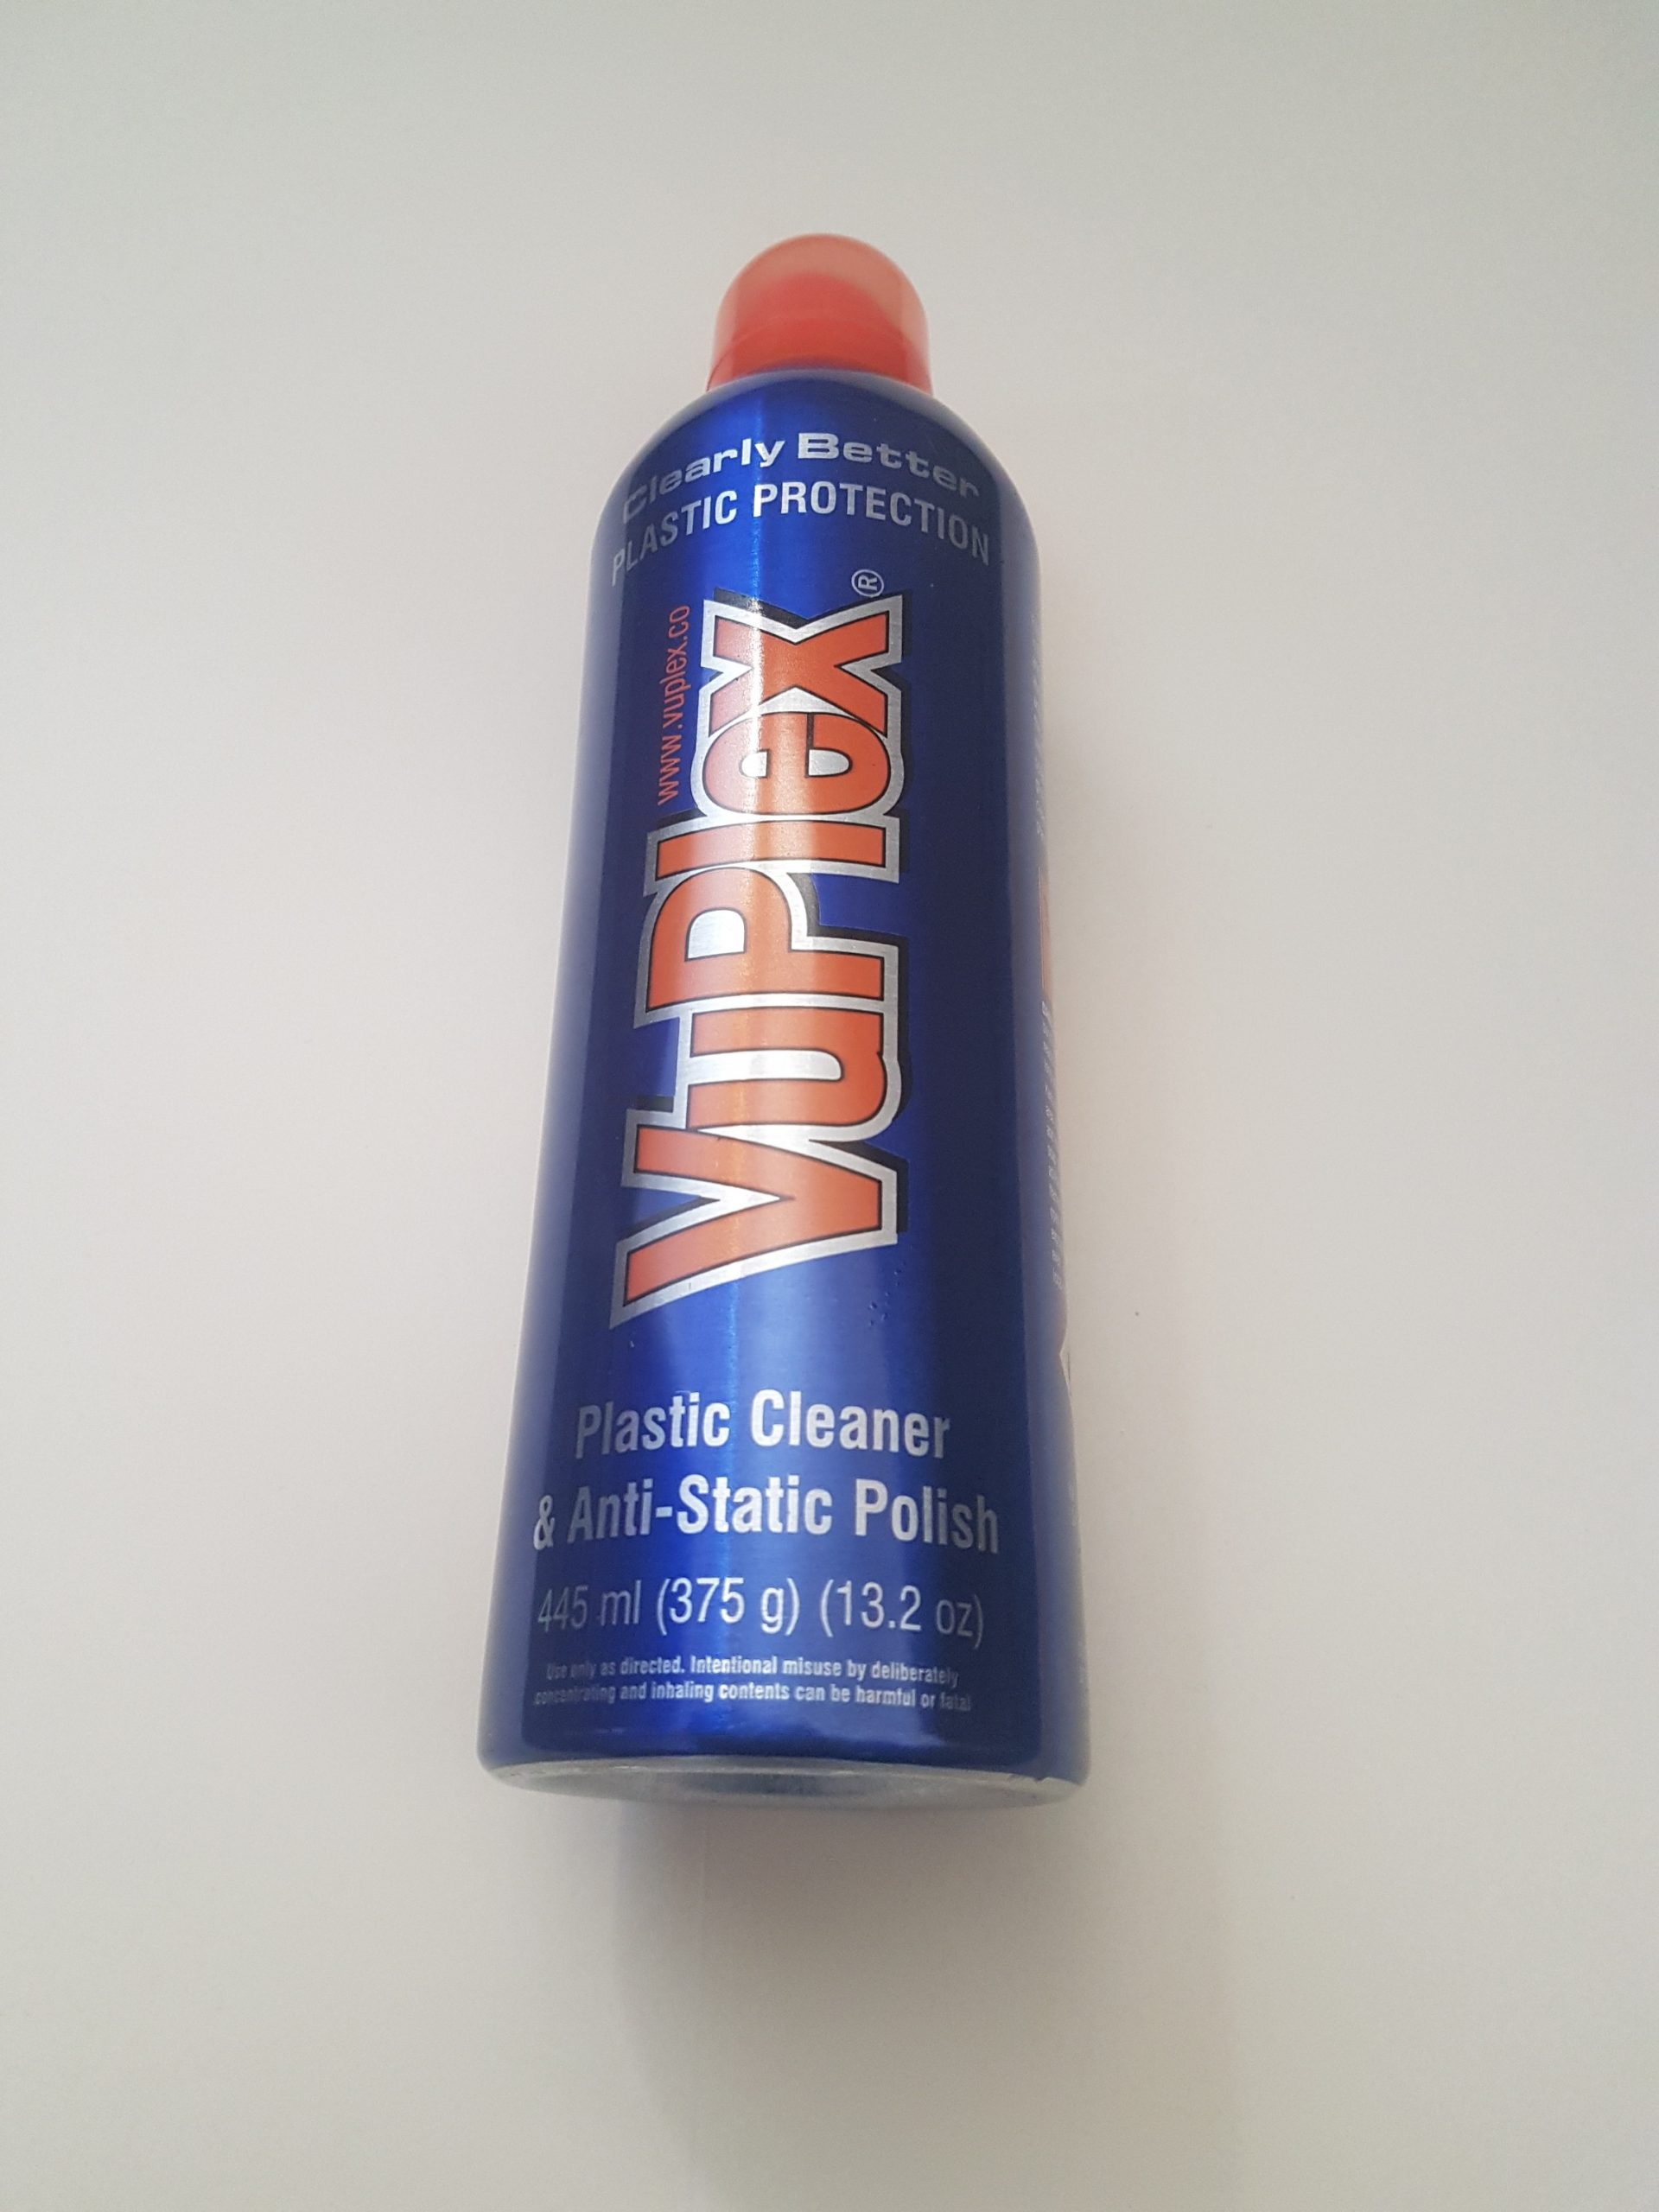 VUPLEX Plastic Cleaner & Anti-Static Polish 375g (445ml) Caravan Acrylic Window Cleaner